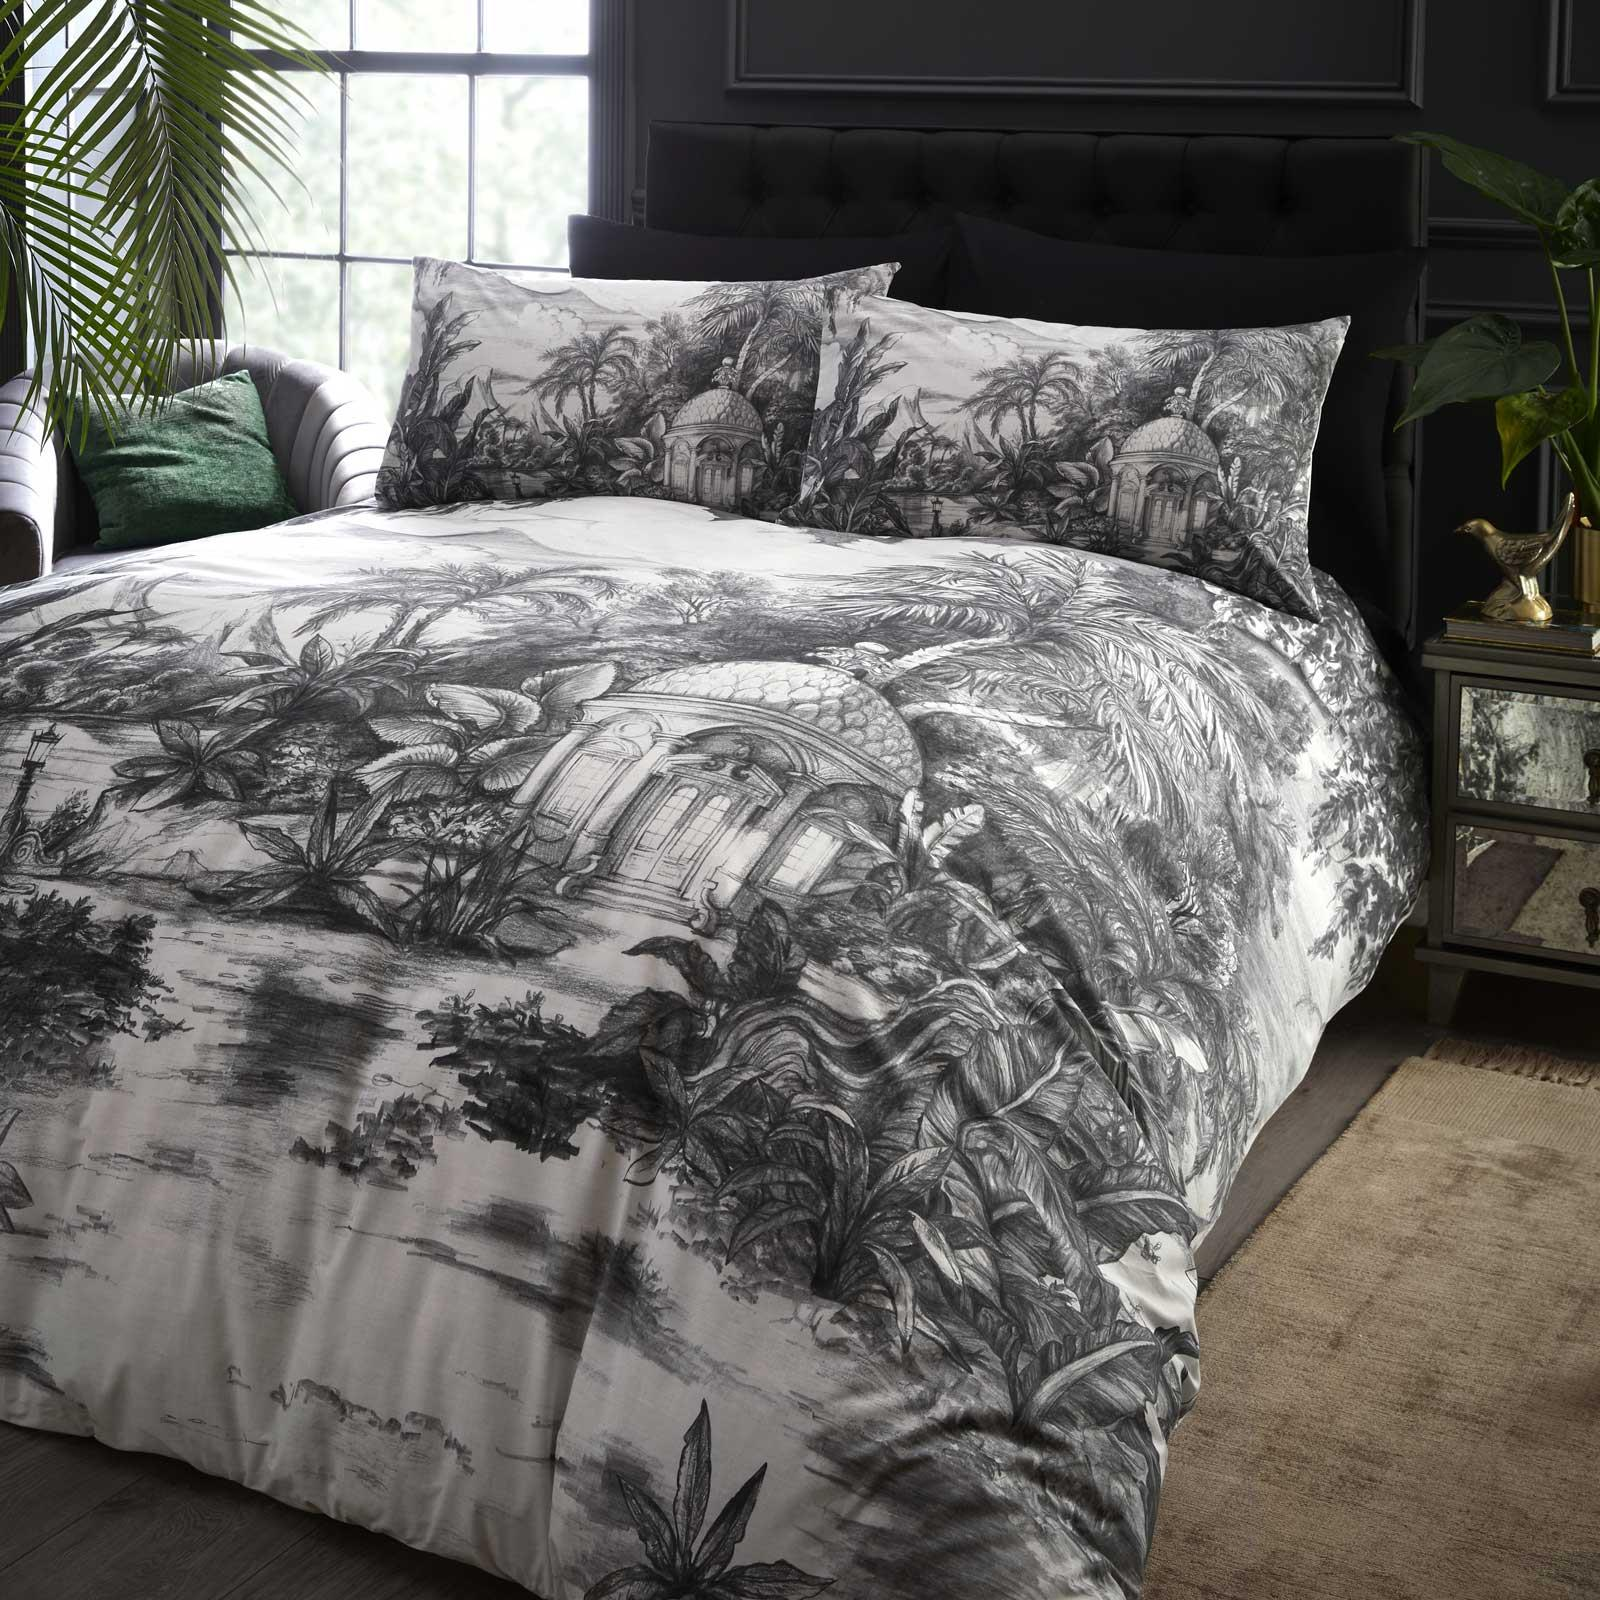 Grey Duvet Covers Tropical Jungle 100 Cotton Laurence Llewellyn Bowen Quilt Set Ebay